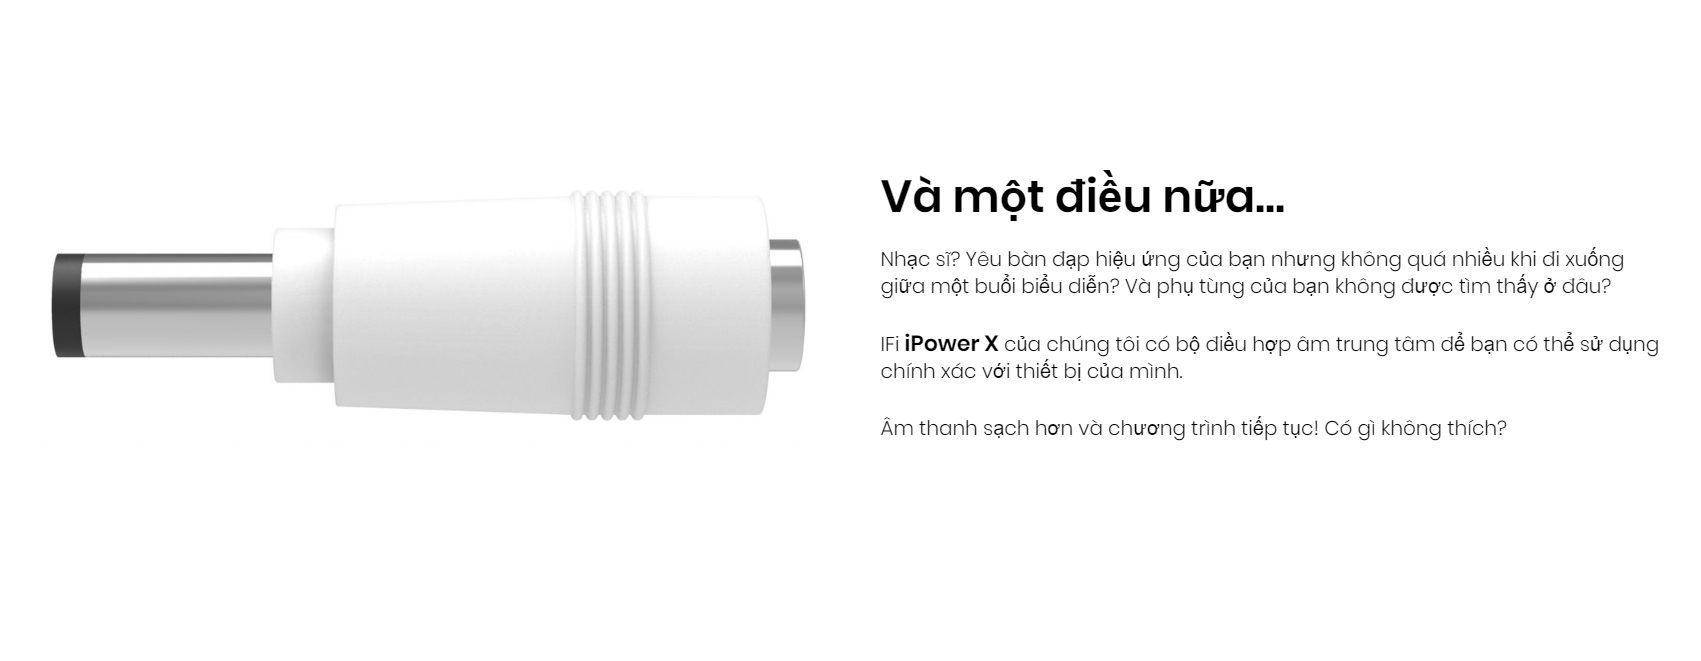 iFi iPower X